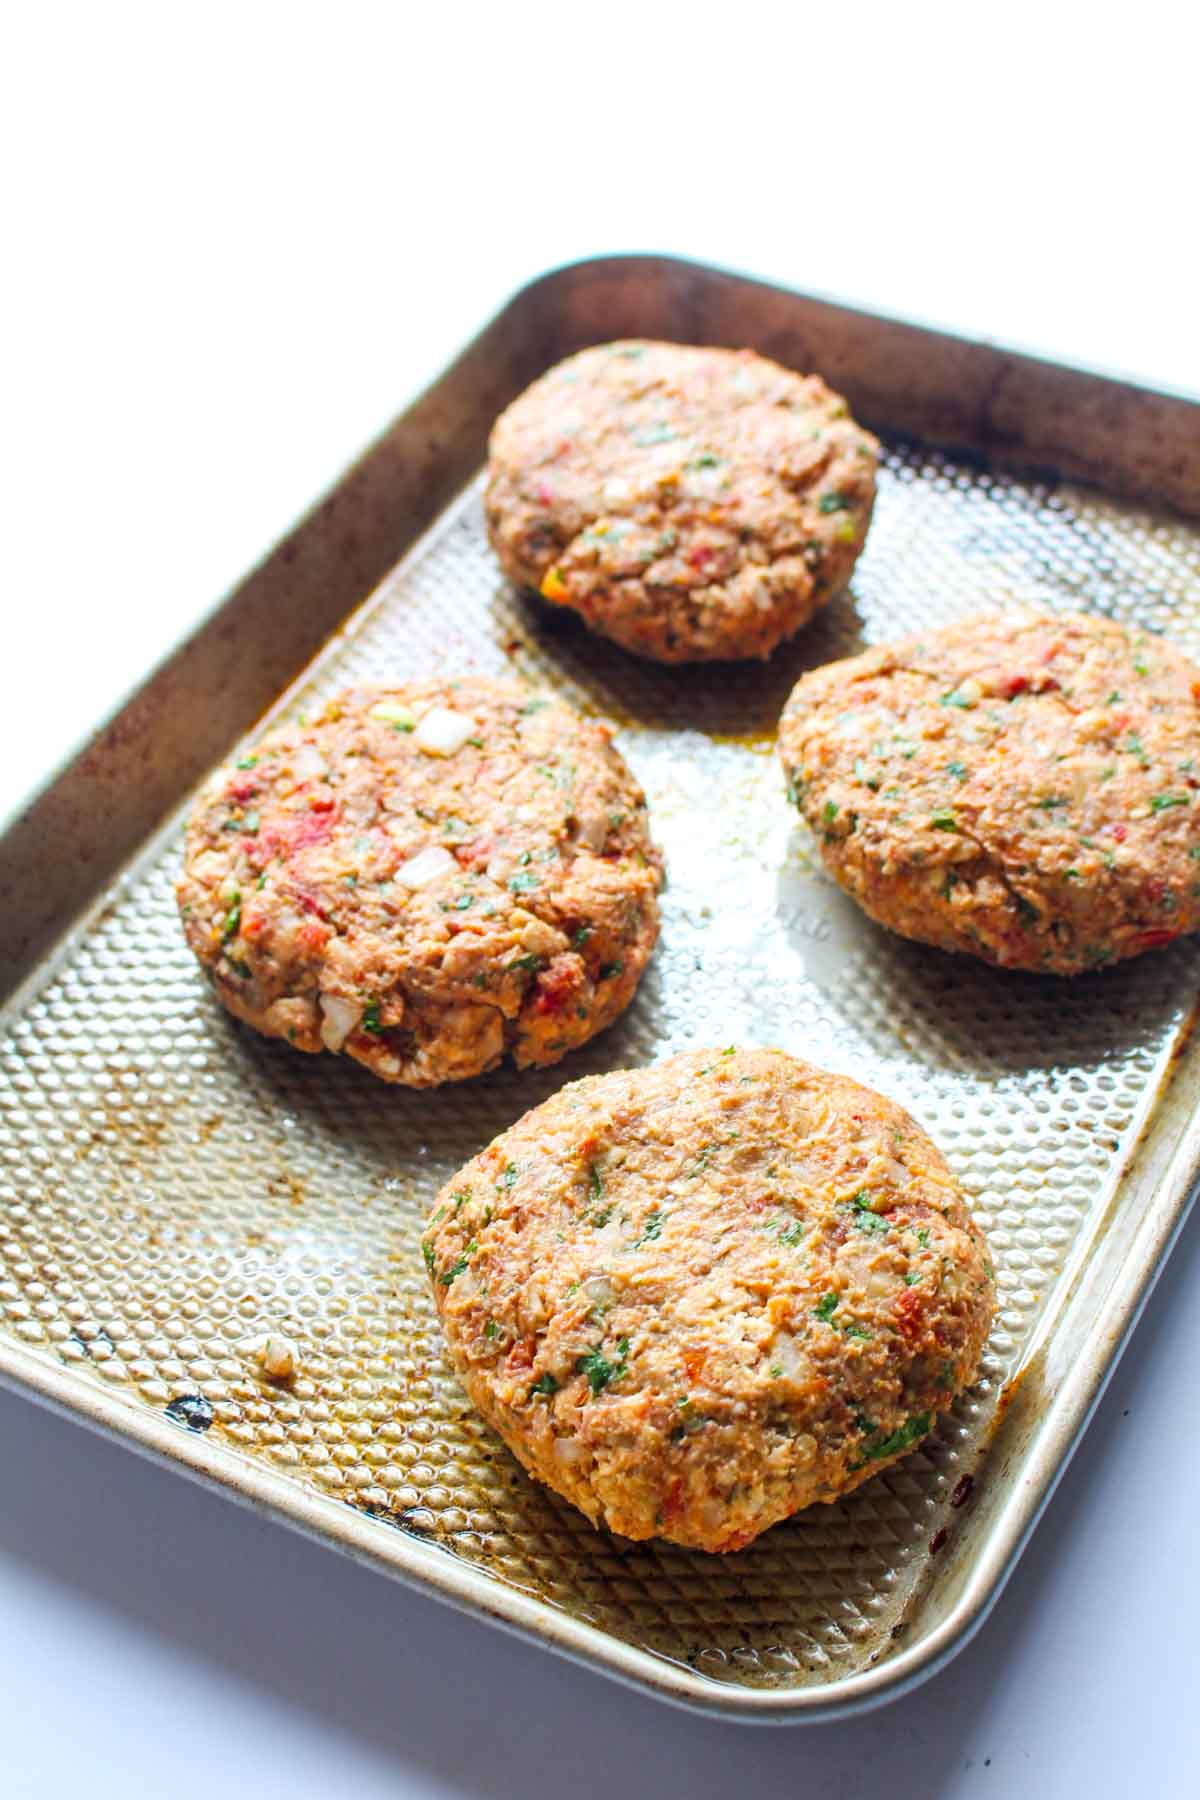 These Mediterranean Chickpea Burgers are jam packed with flavor! This healthy recipe is gluten free, vegan and surprisingly easy to make. | CatchingSeeds.com